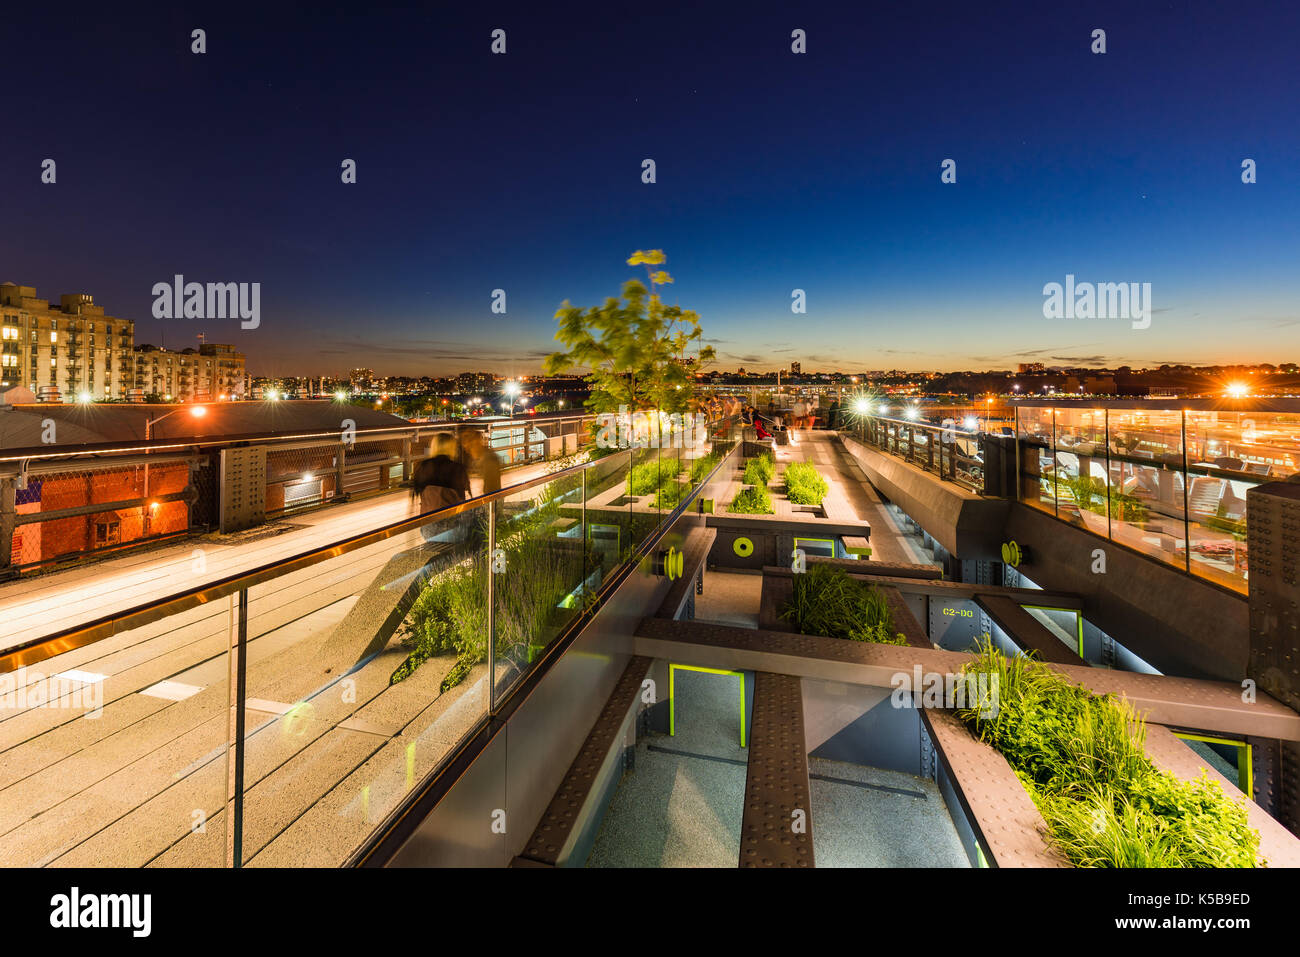 The High Line promenade at dusk. Chelsea, Manhattan, New York City - Stock Image